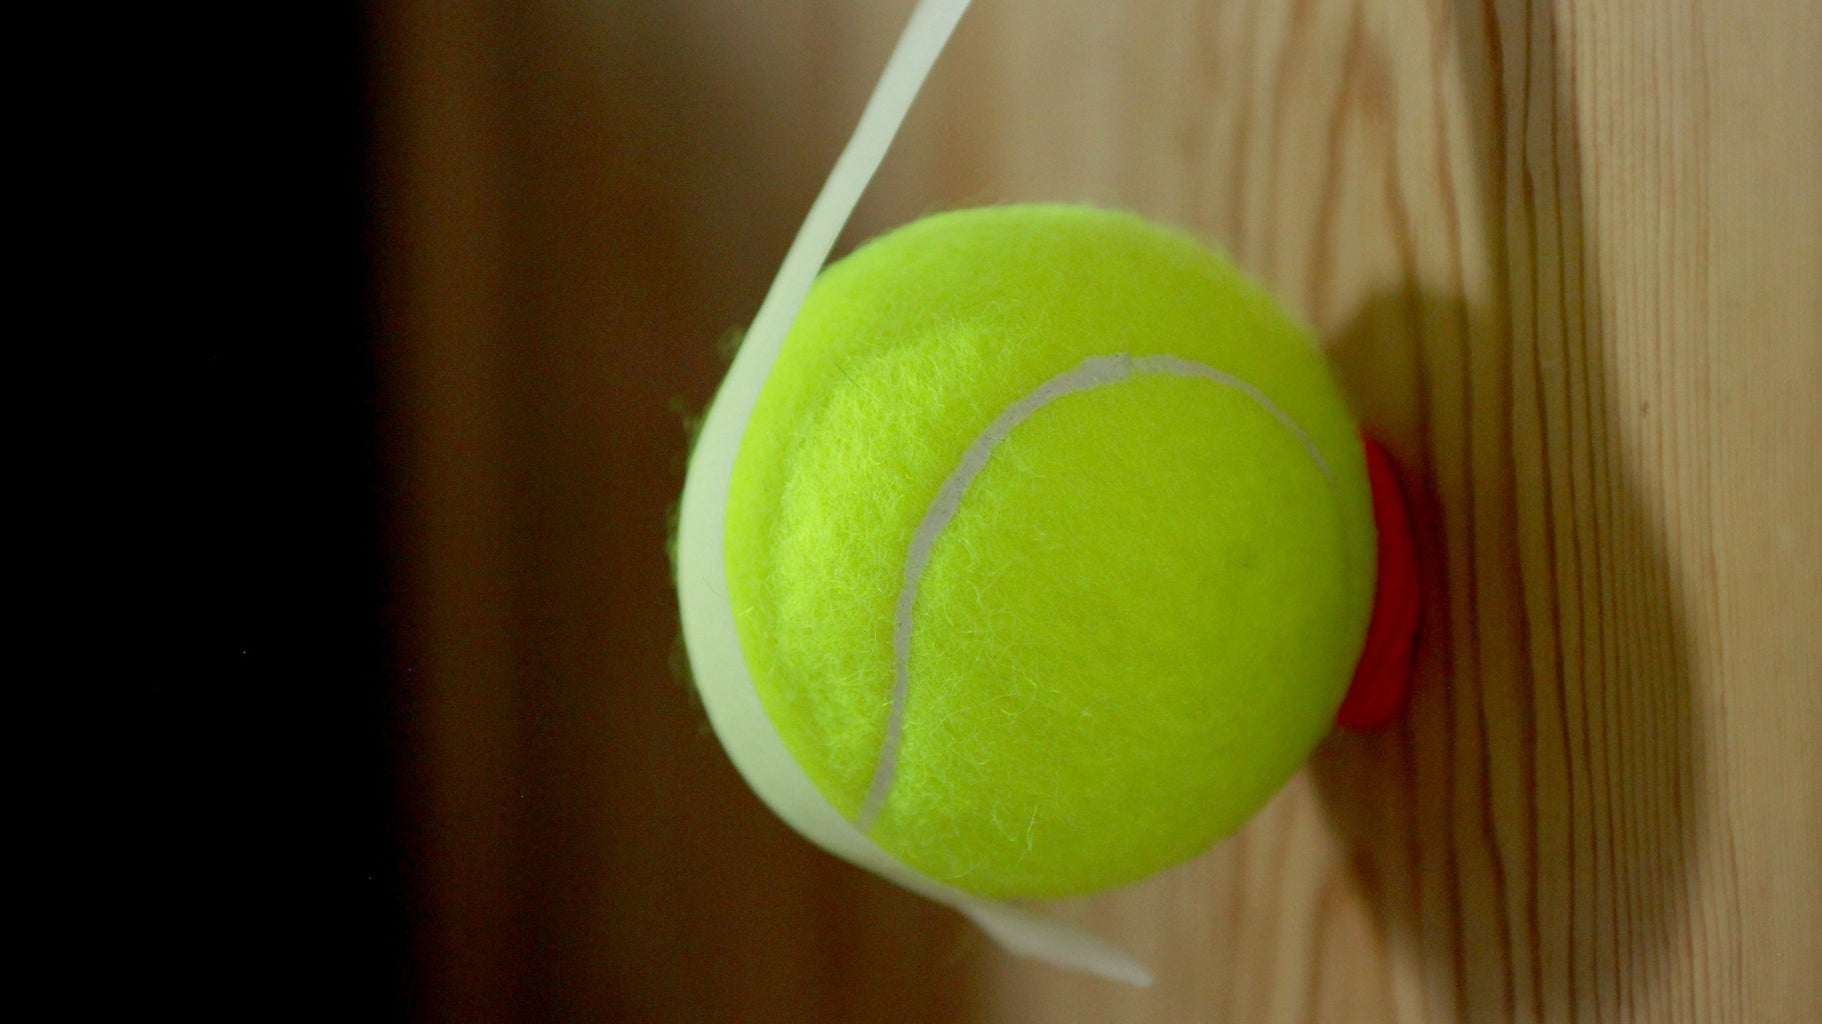 Secure the Tennis Balls With Tape